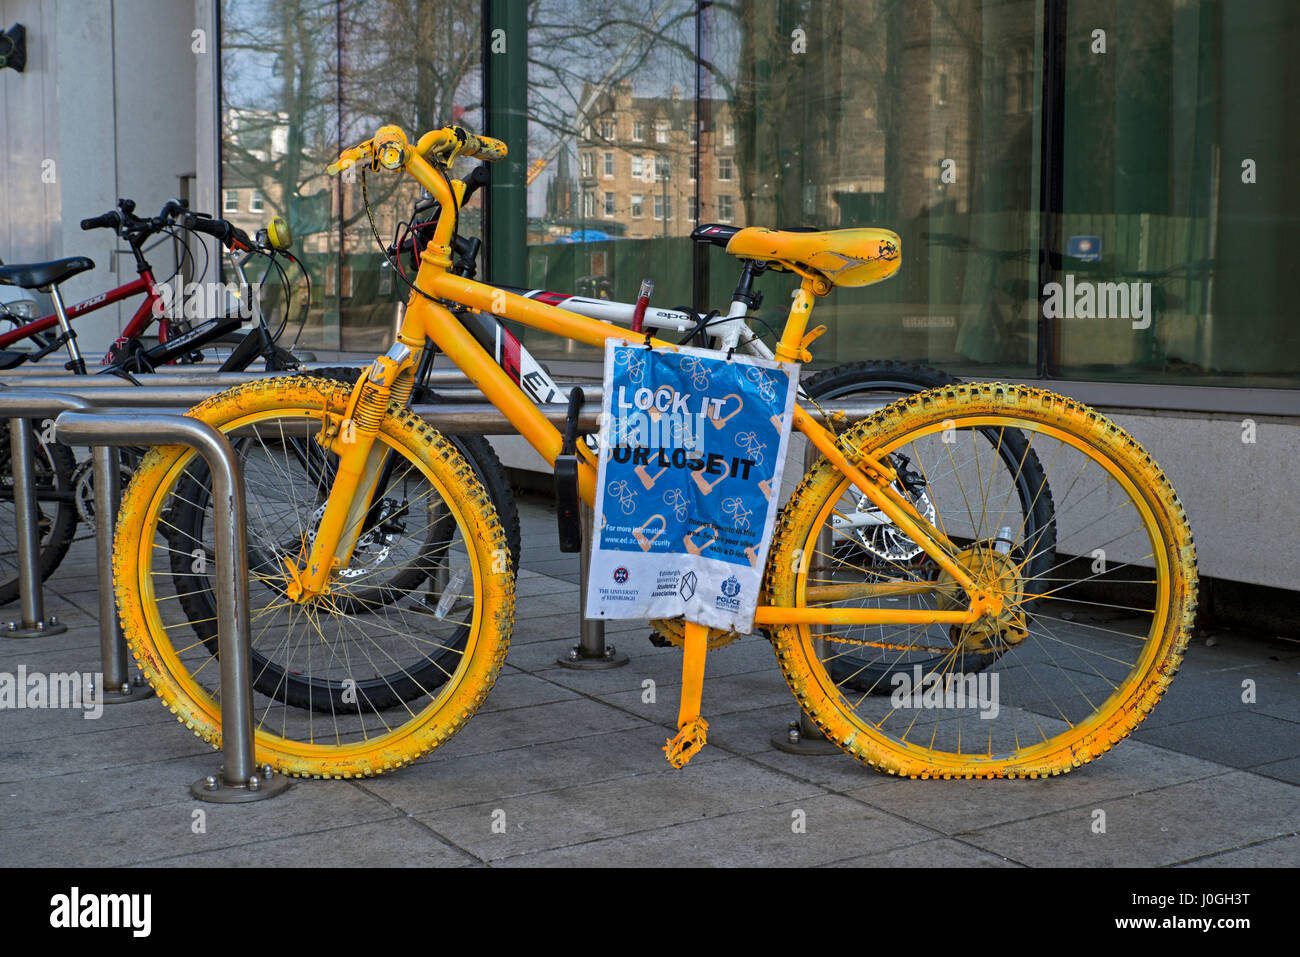 'Lock It, or Lose It' poster, part of the University of Edinburgh's bicycle security campaign. - Stock Image